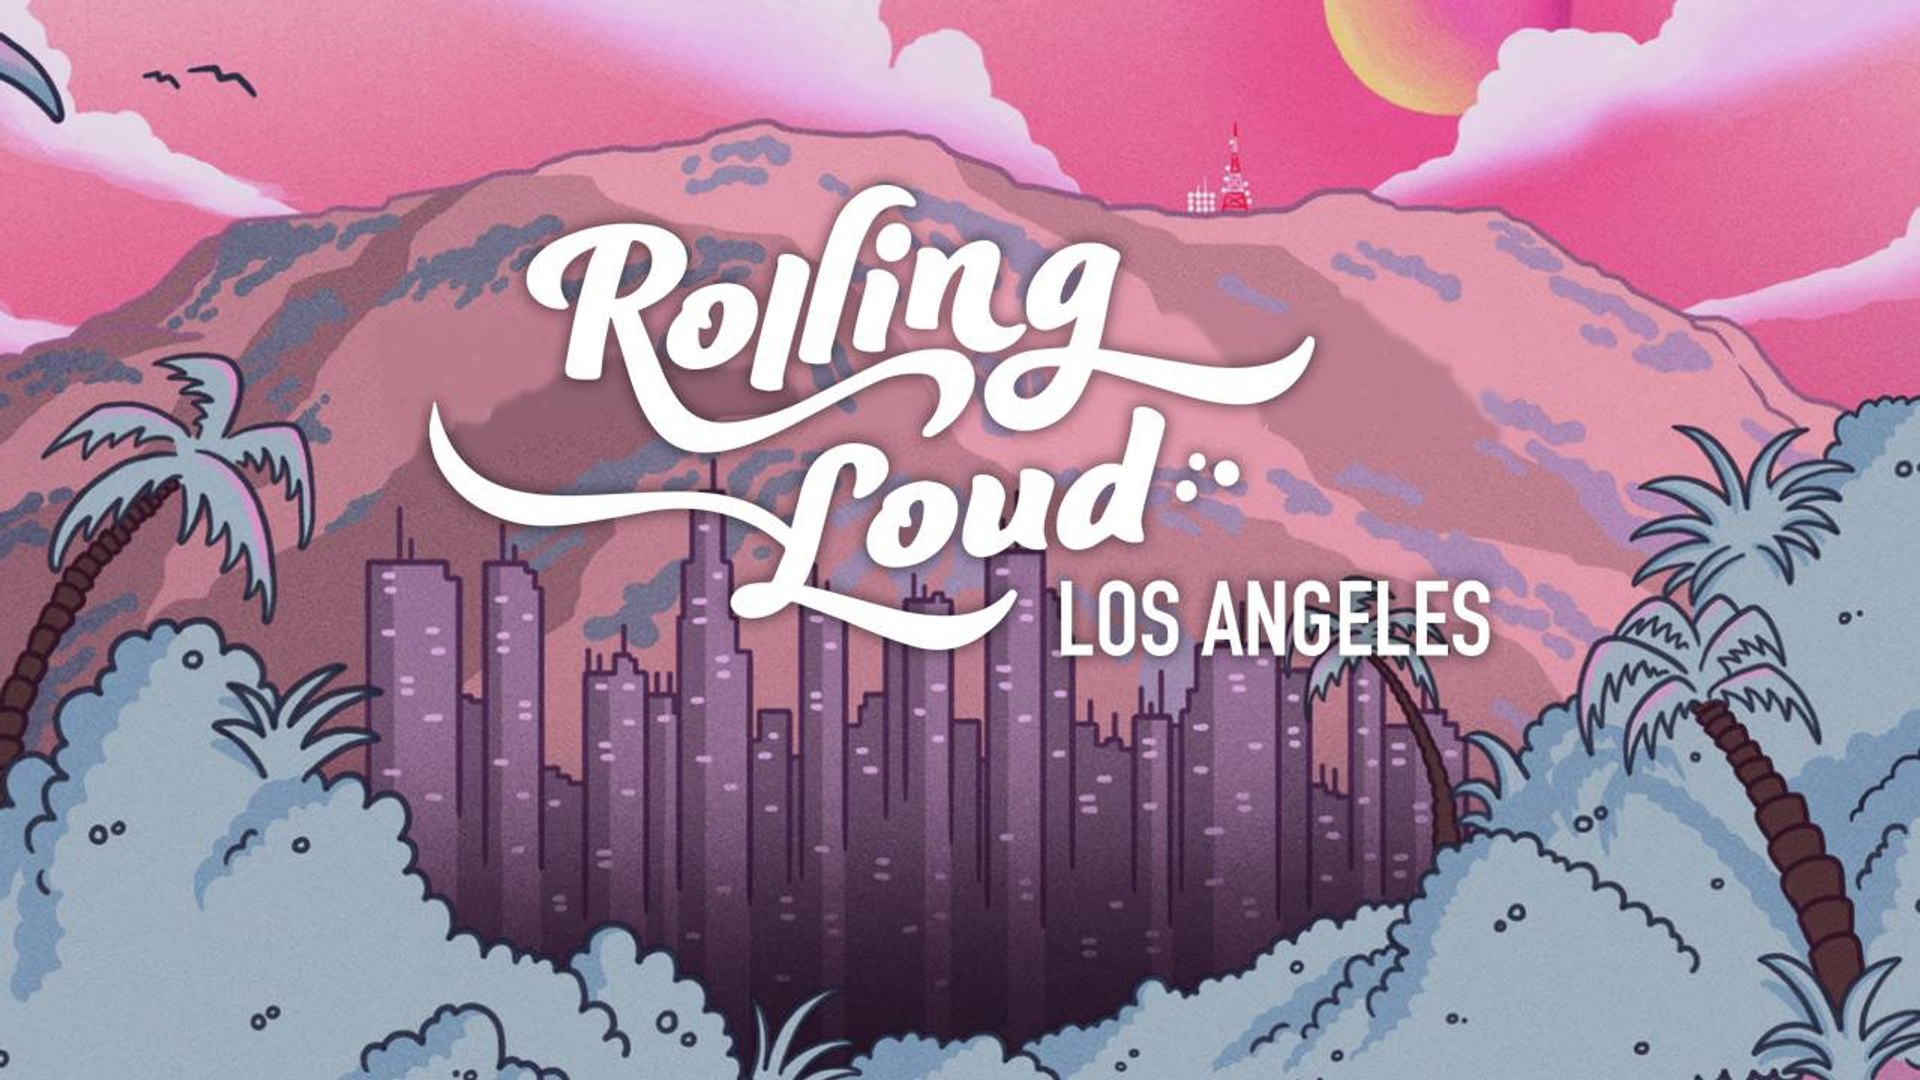 Rolling Loud La Day 1 Stage 1 Video Dailymotion Check out this fantastic collection of lil uzi vert wallpapers, with 36 lil uzi vert background images for your desktop, phone or tablet. rolling loud la day 1 stage 1